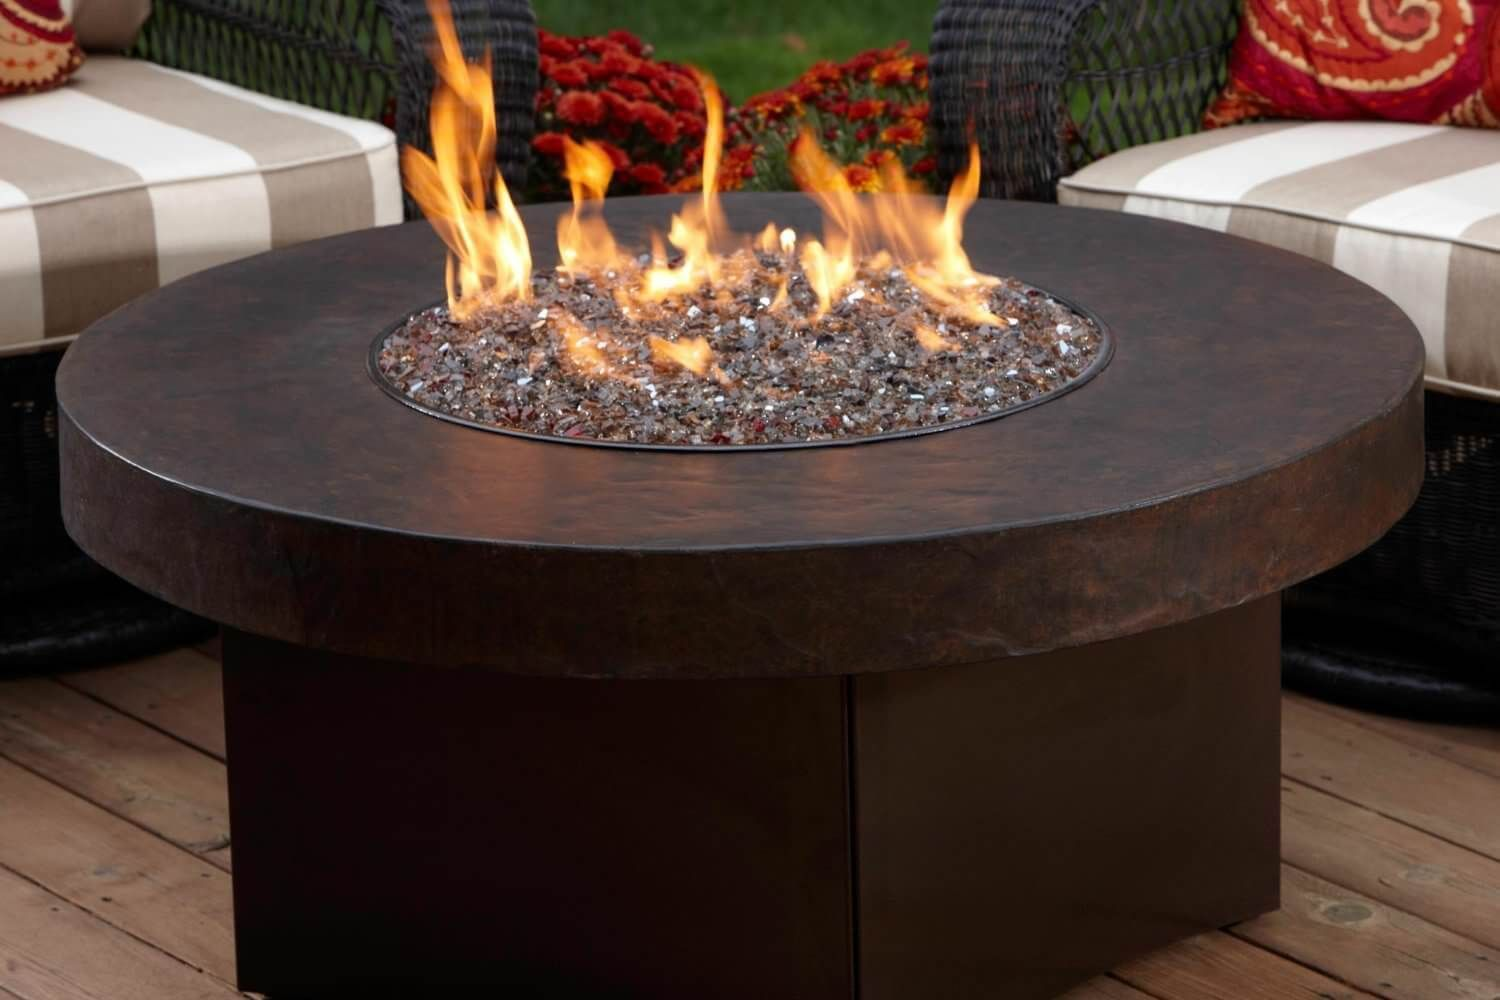 20 Stunning Outdoor Fire Pit Ideas Backyard Pleasant To Be Able To Our Web Site In This Time Period I M Goi Gas Fire Pits Outdoor Gas Firepit Small Fire Pit